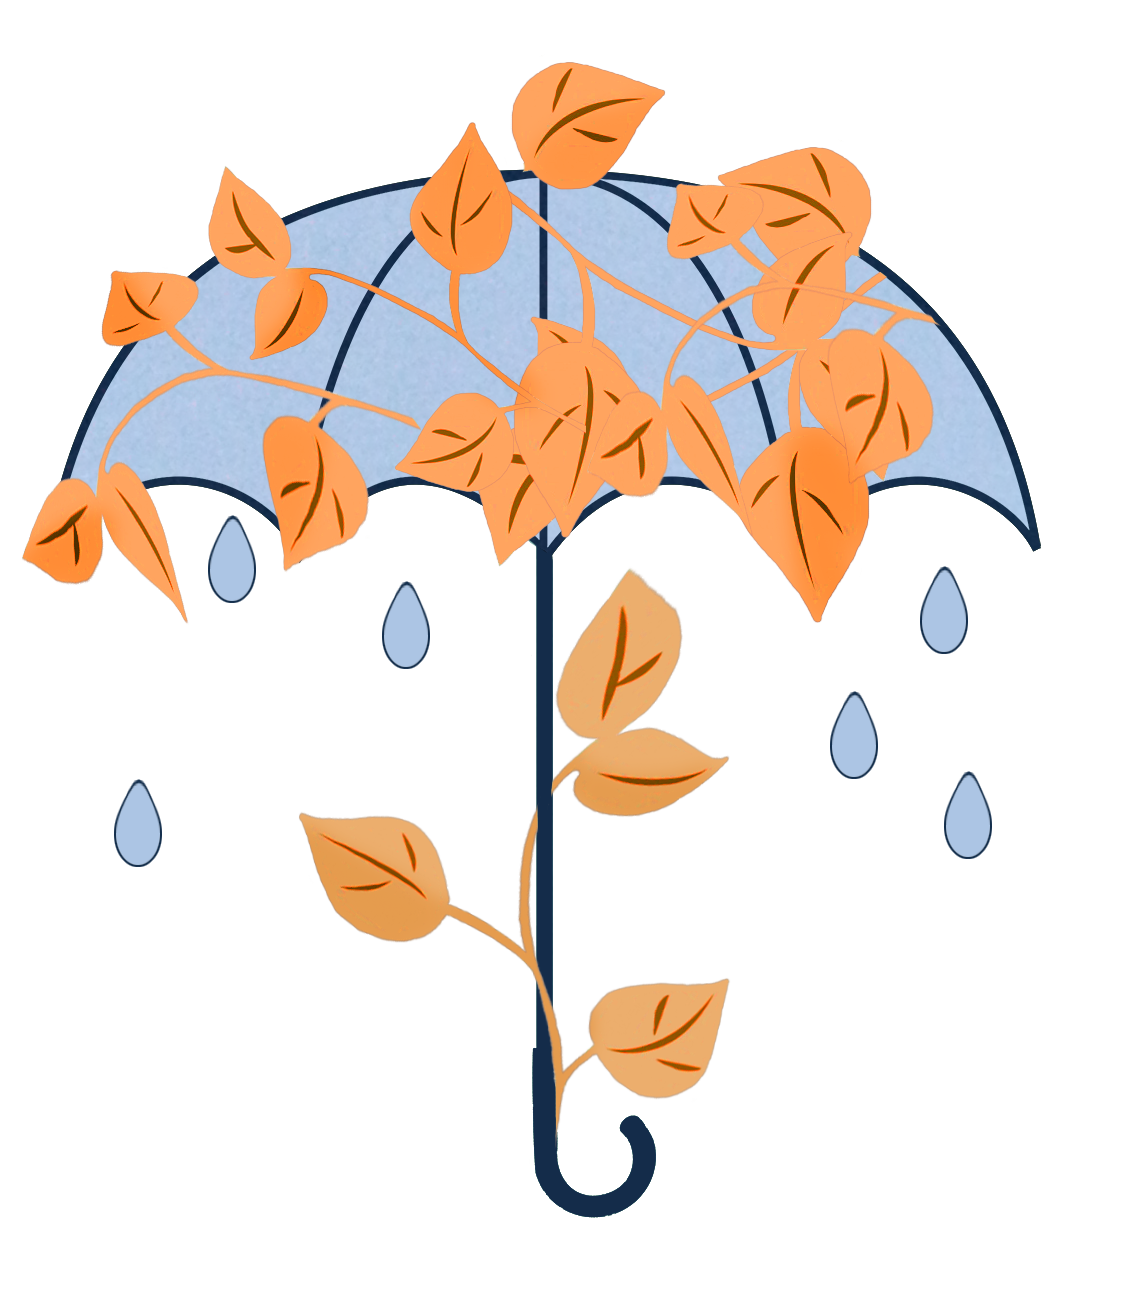 autumn umbrella with leaves and rain drops